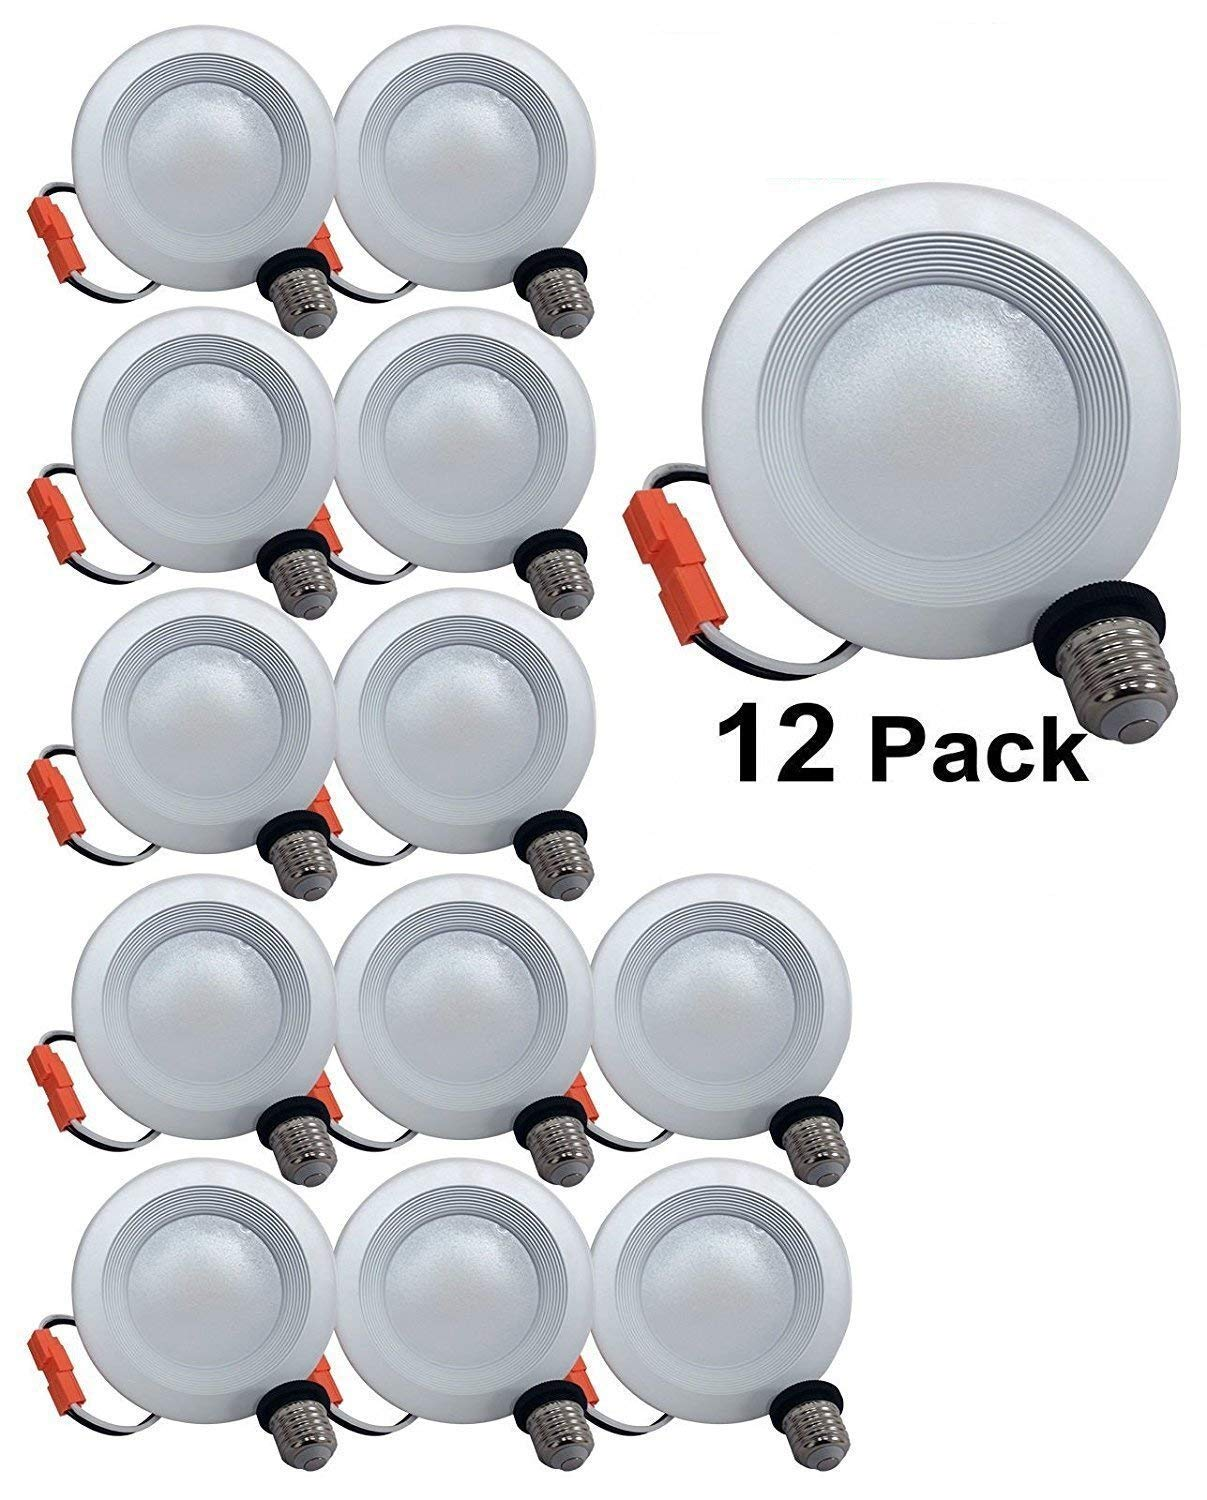 4'' Dimmable LED Downlight Baffle Trim, 540 Lumens, 5000K Daylight, Recessed Retrofit Lighting Trim, 9W (60W Replacement), Energy Star UL Listed,Title 24 JA8-2016 Compliant 12 Pack